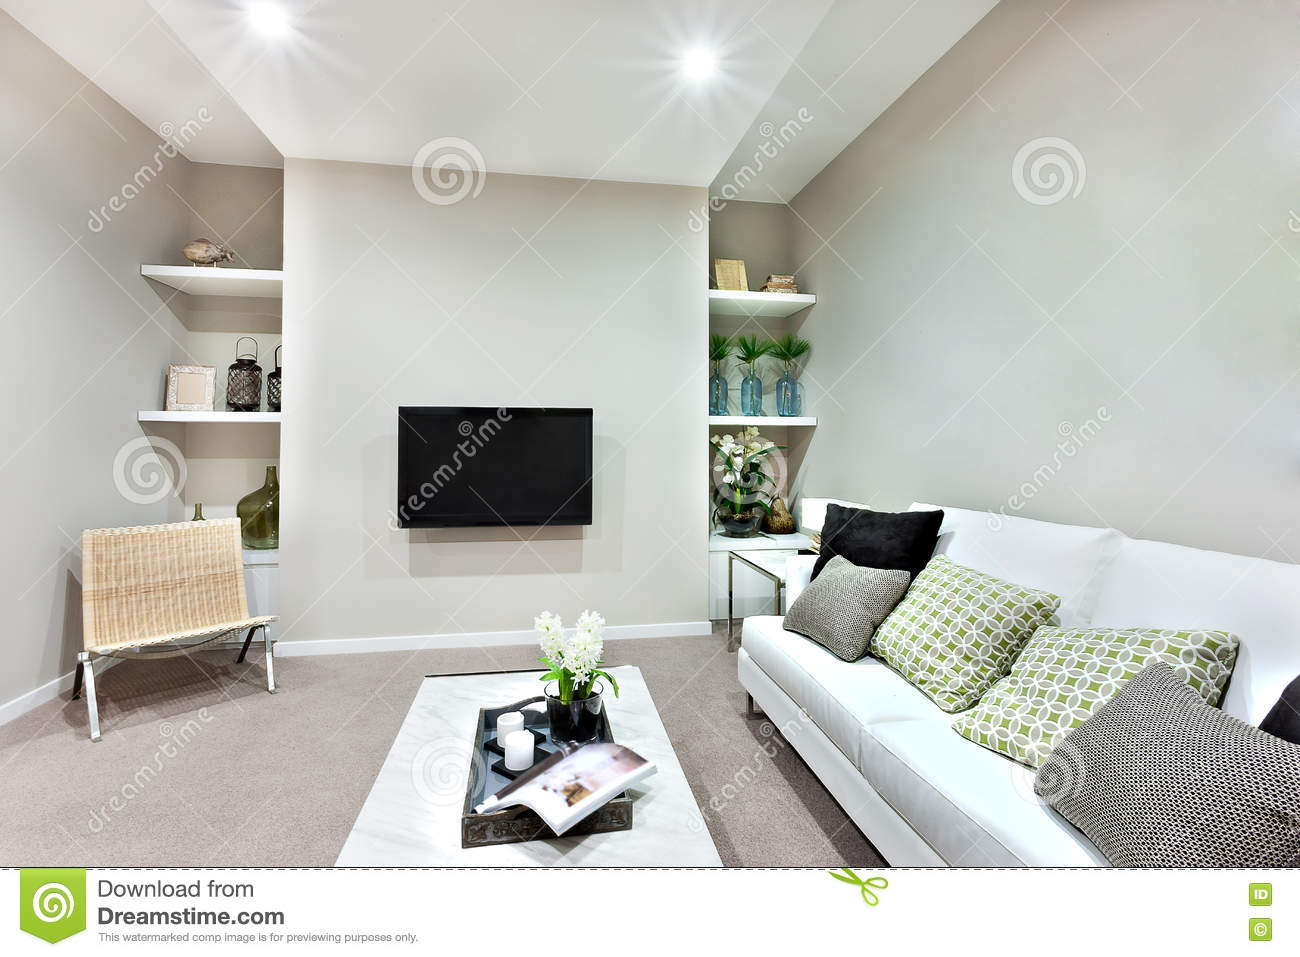 Television On The Wall In A Luxury Living Room Stock Photo - Image ...